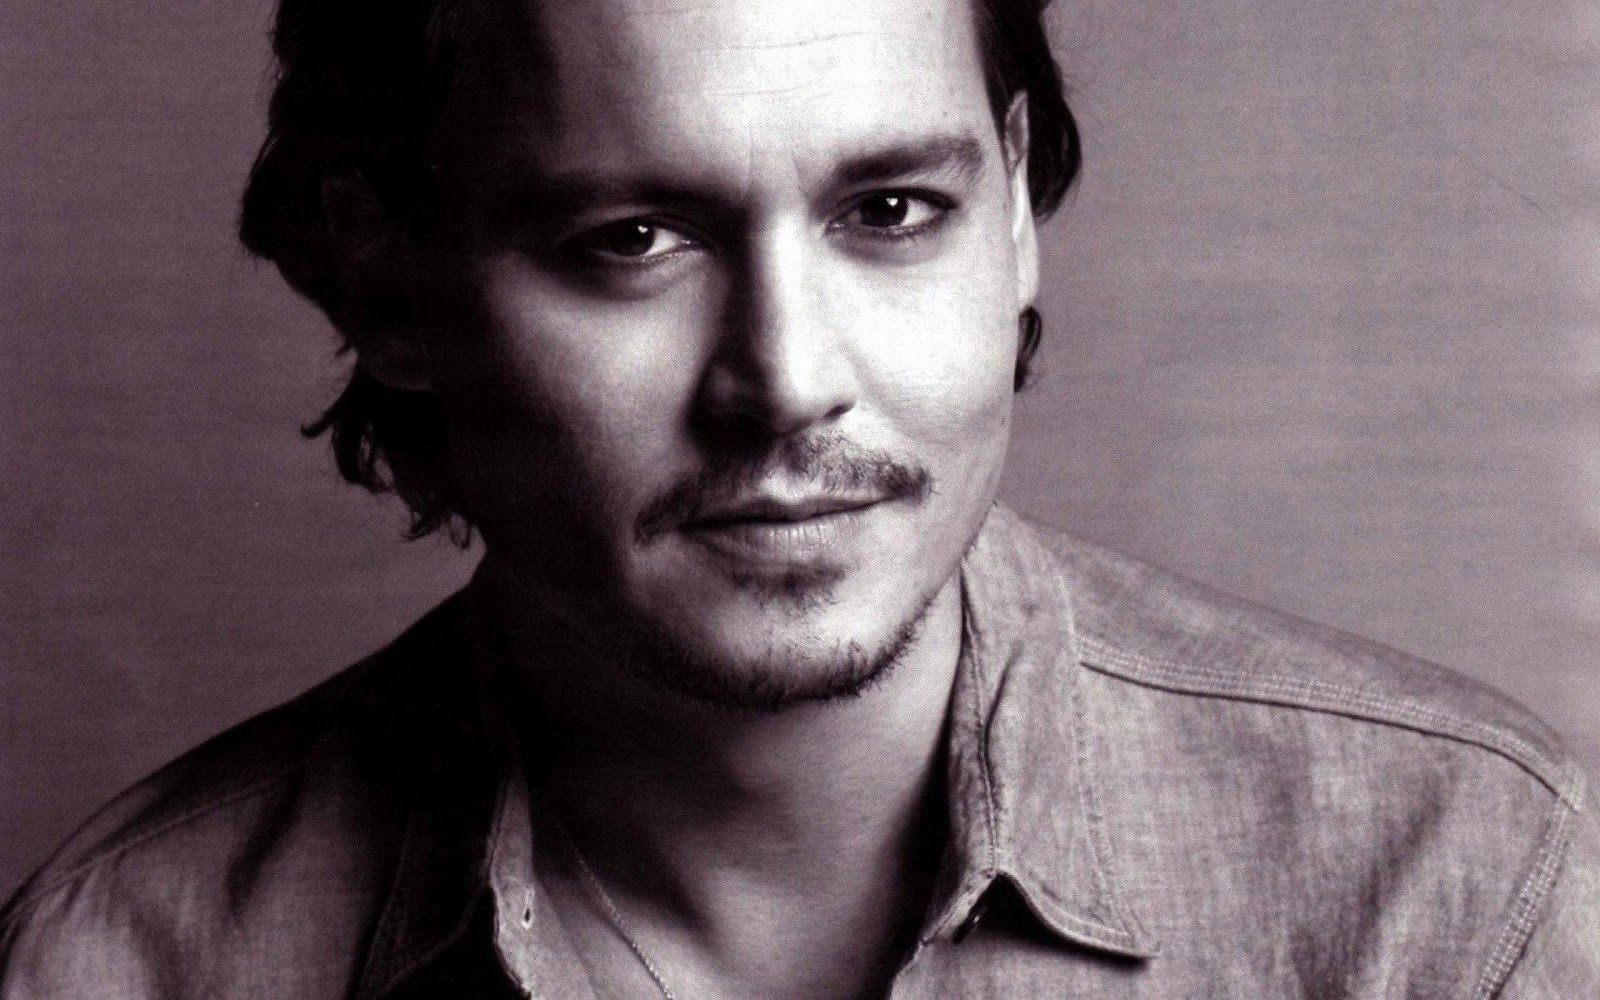 http://2.bp.blogspot.com/-vpM3B9yr1DU/TtcKWd2sd9I/AAAAAAAAAfY/FuiVKDll3Kk/s1600/Johnny-Depp-pictures-desktop-Wallpapers-HD-photo-images-6.jpg